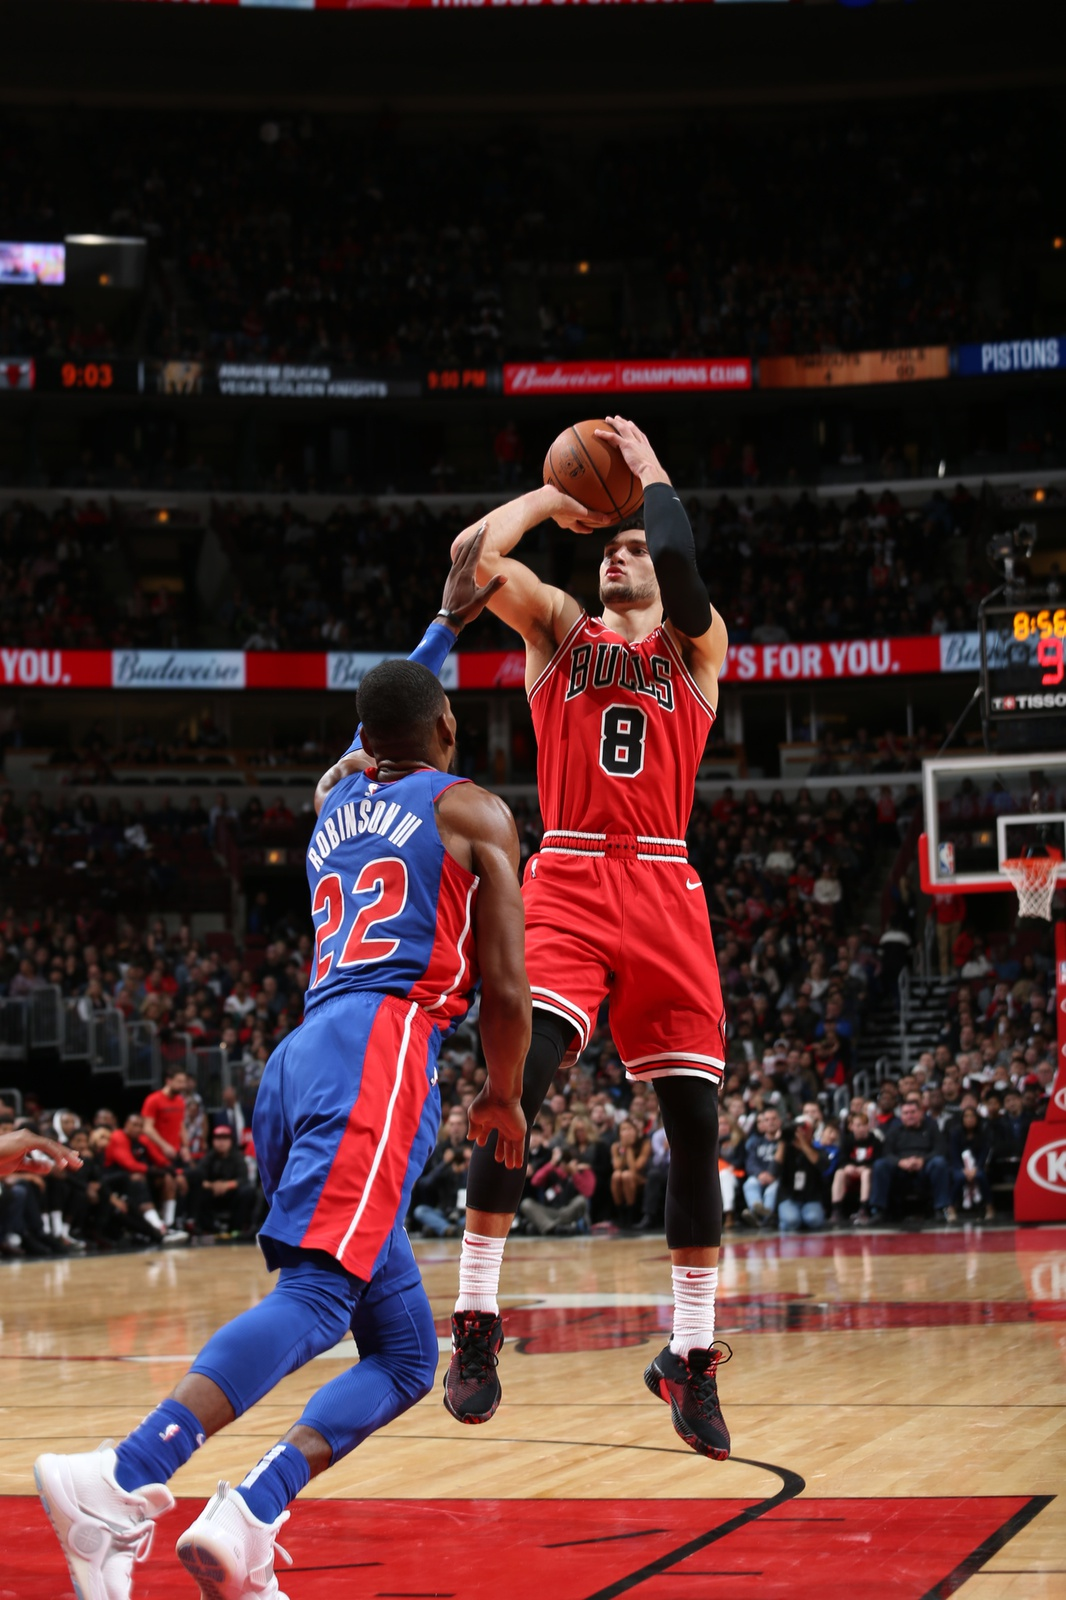 Zach LaVine of the Chicago Bulls shoots the ball in a game against the Detroit Pistons.